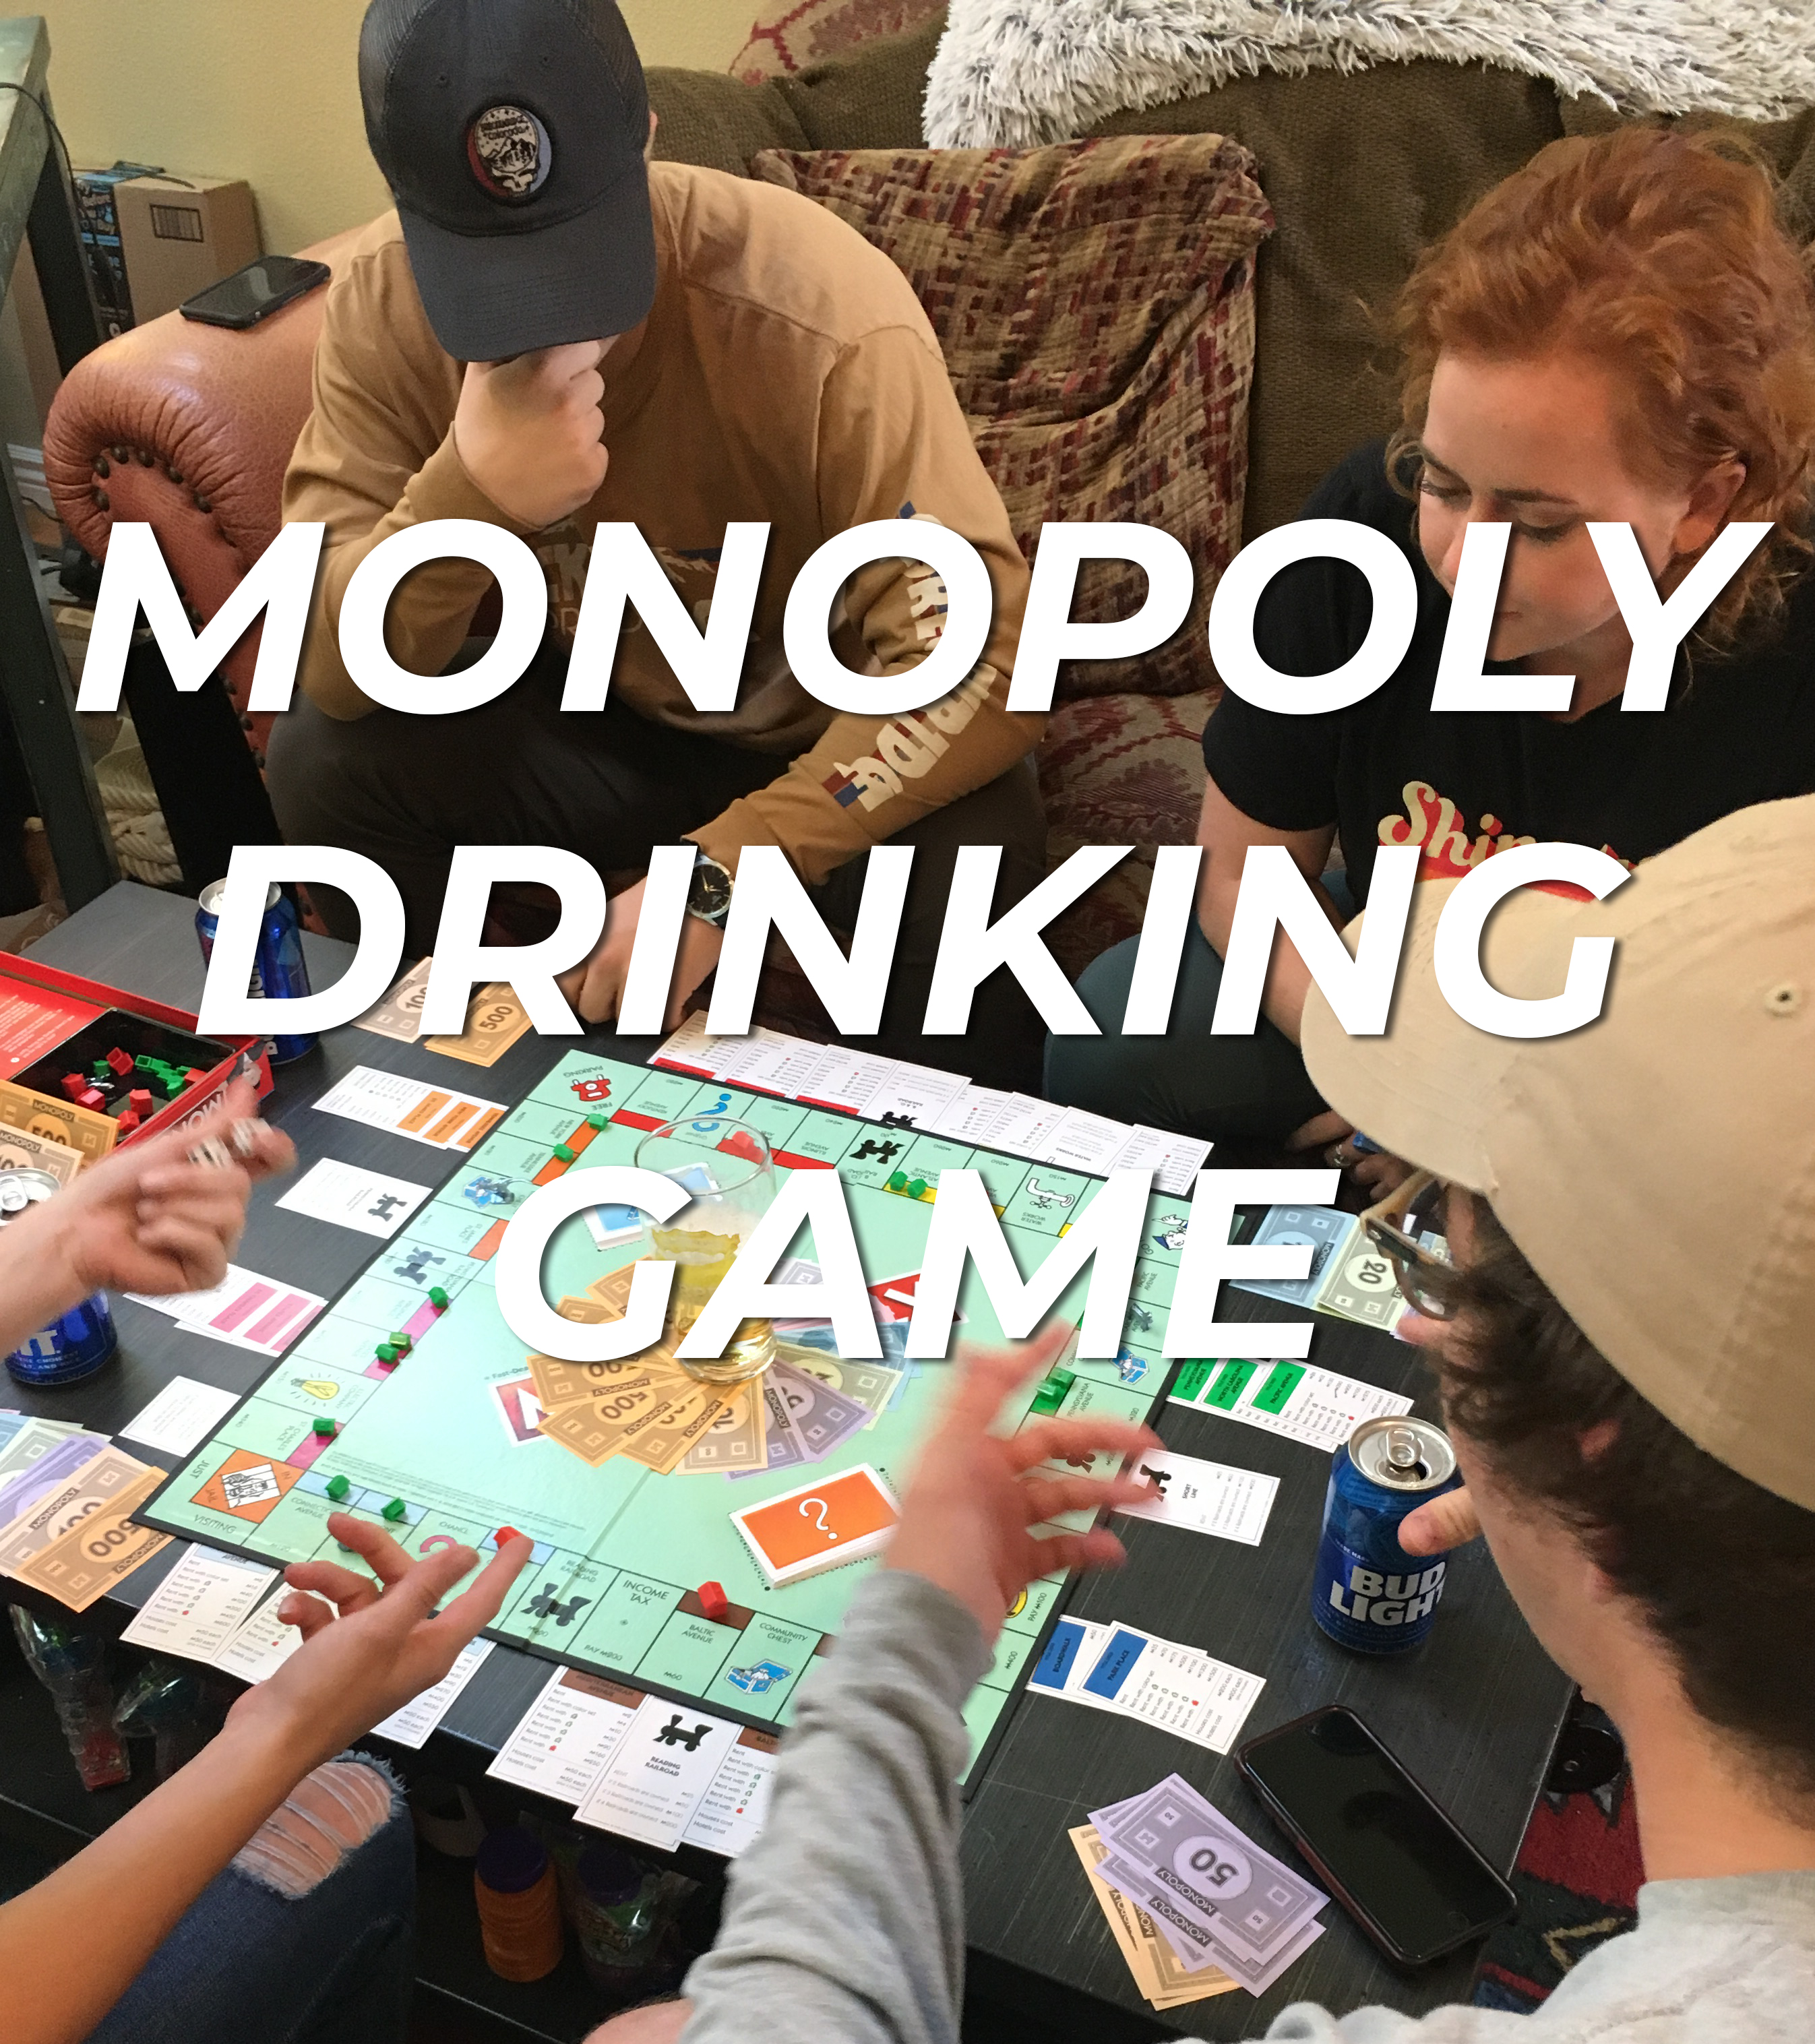 Monopoly Drinking Game Rules